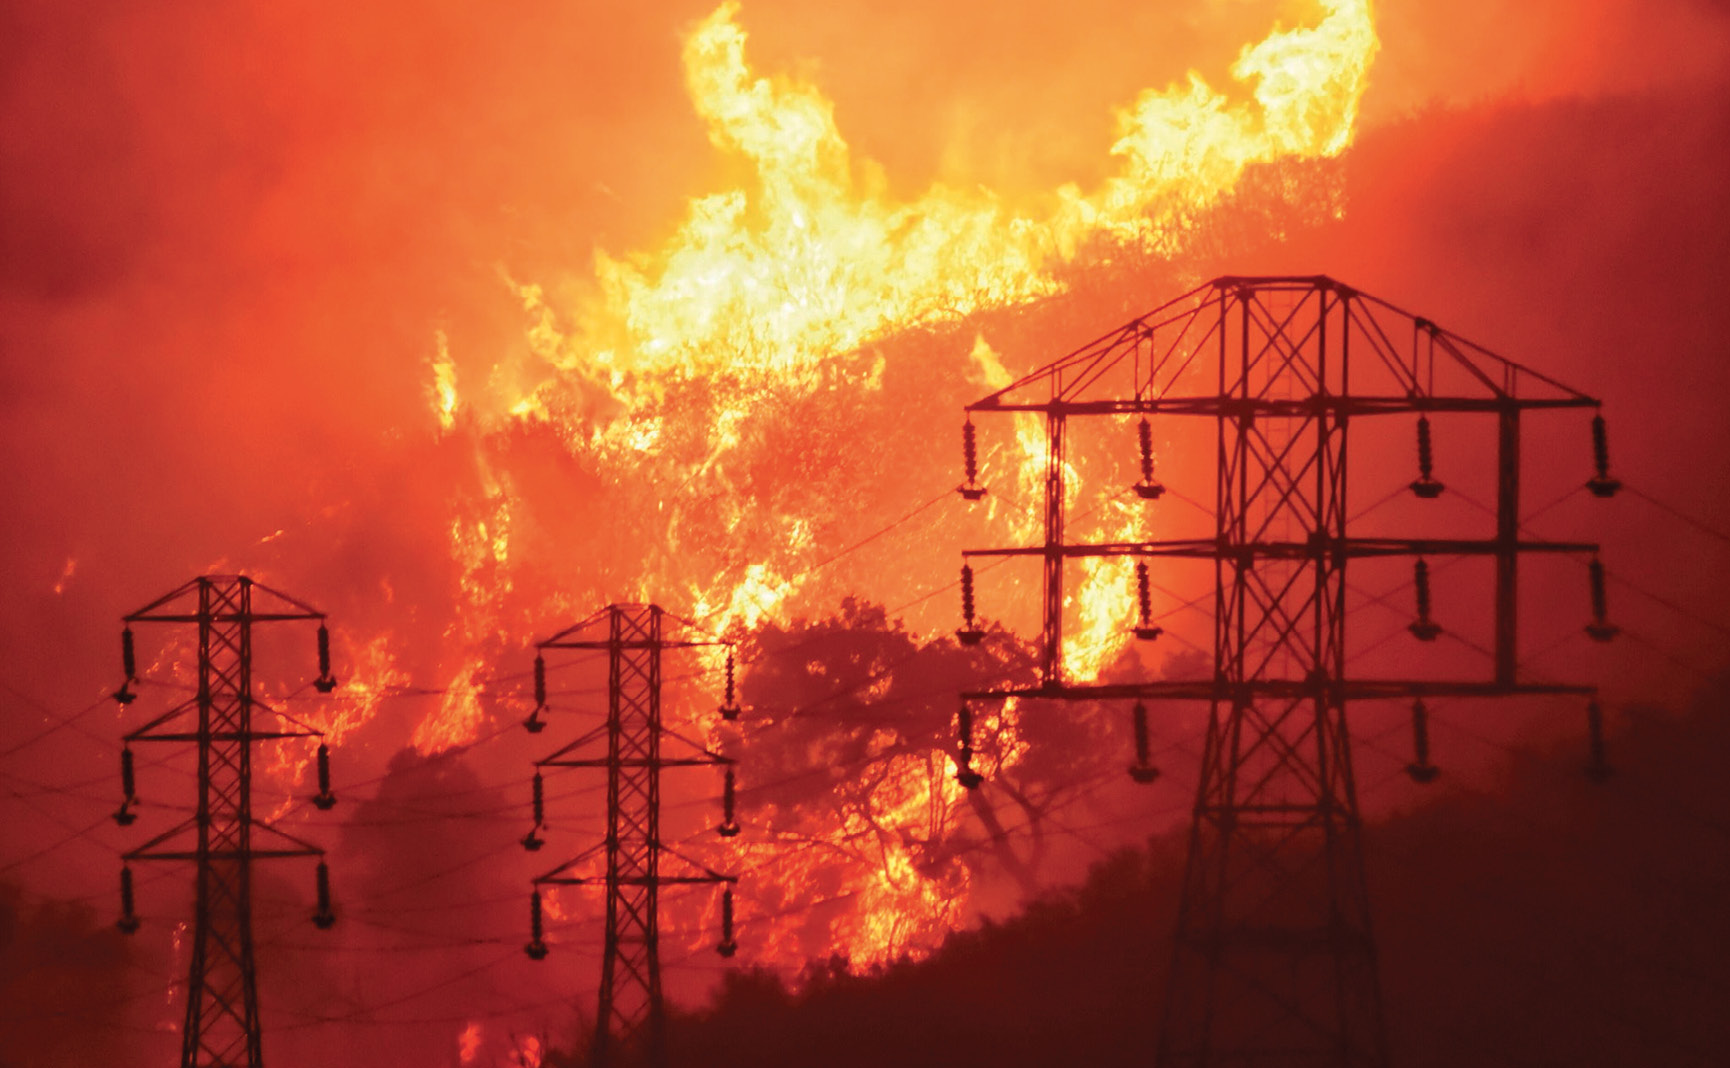 Wildfire burns near power lines in California